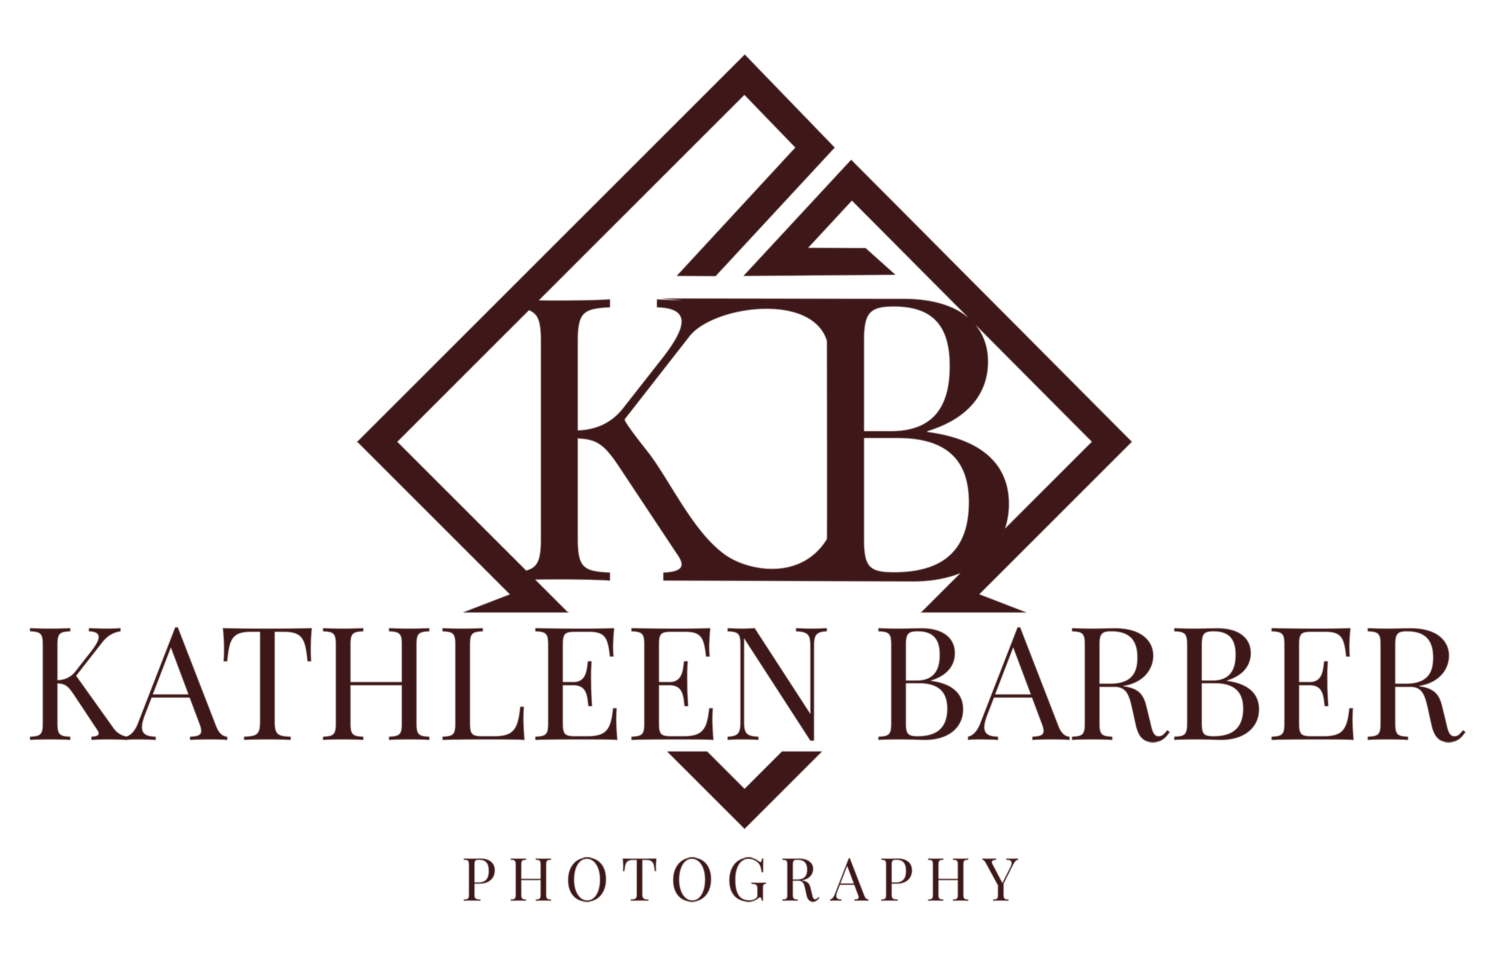 Kathleen Barber Photography